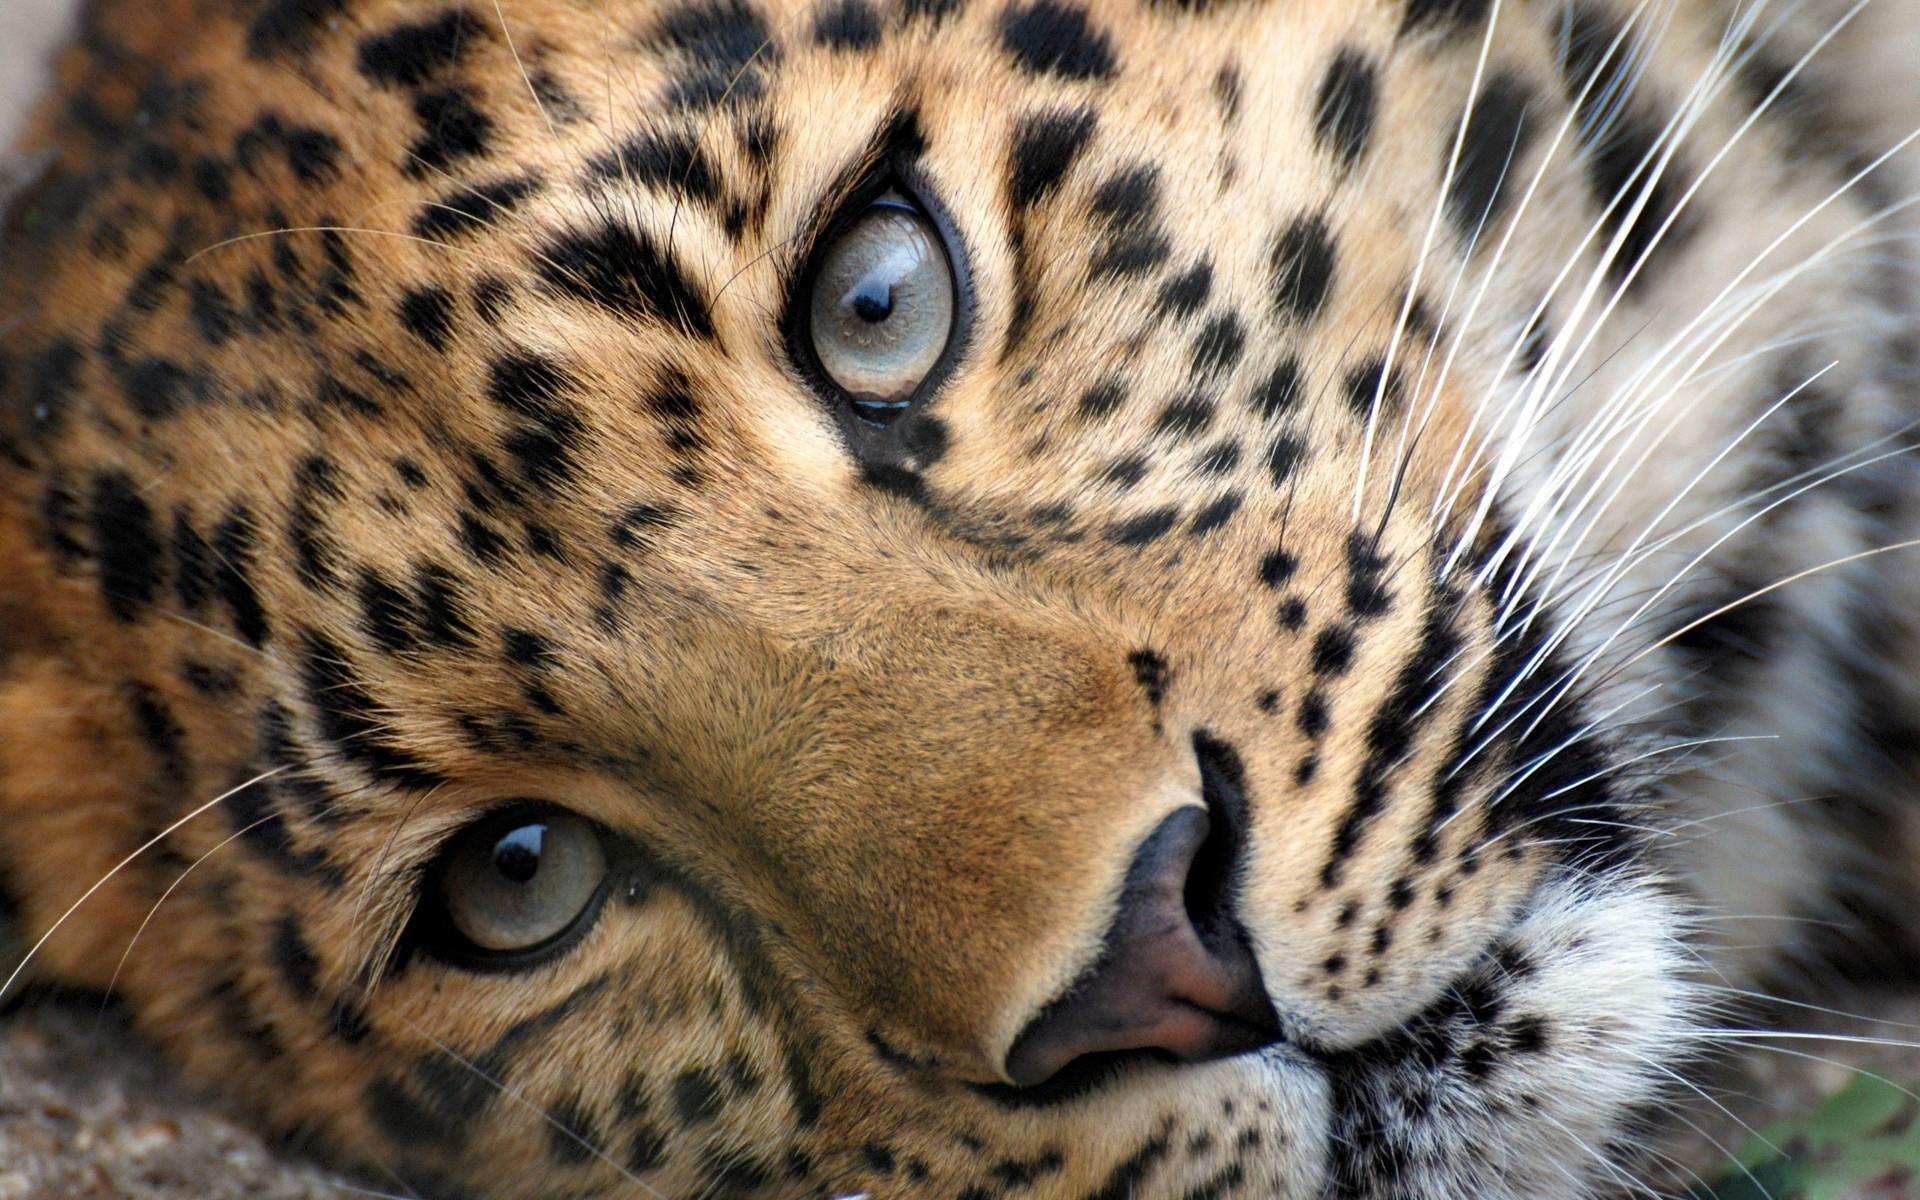 Big Cats - Wild Animals Wallpaper (34365420) - Fanpop